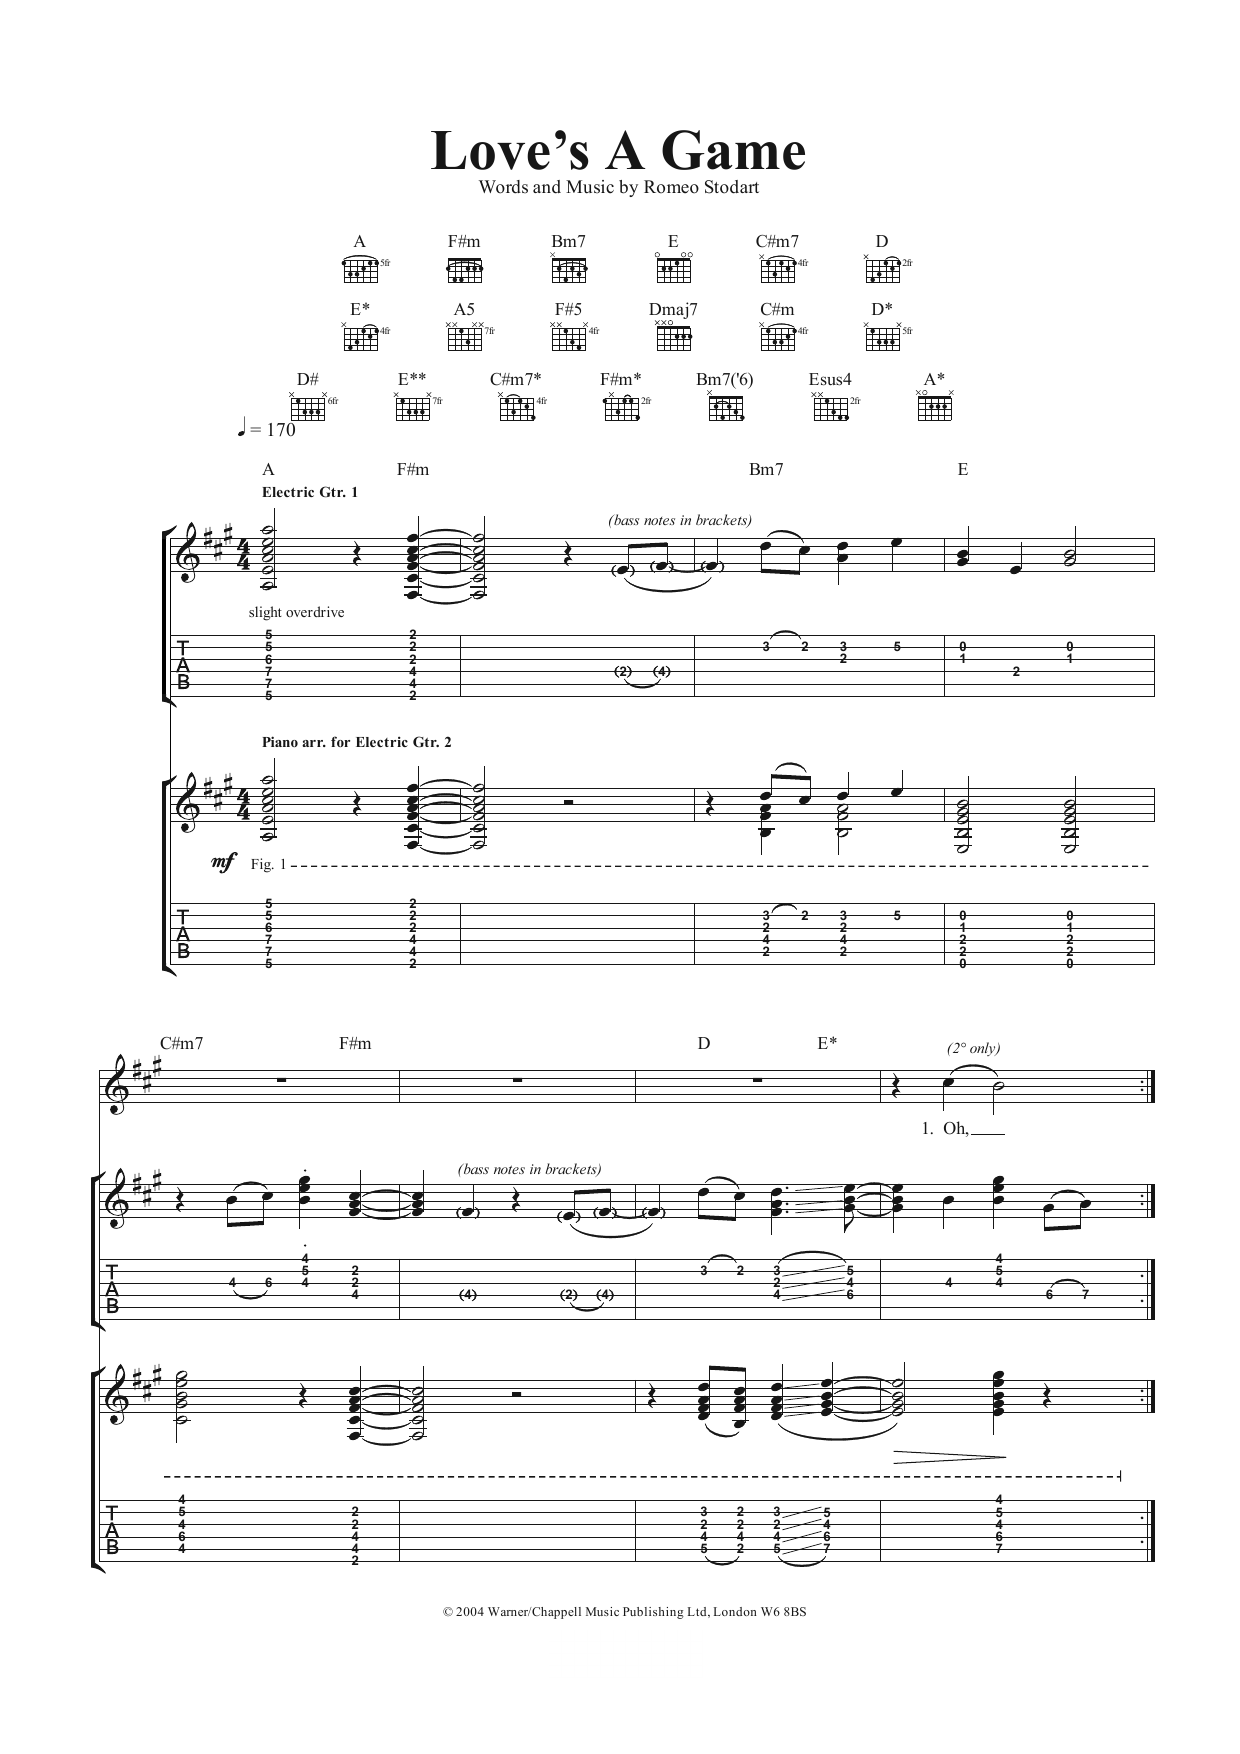 Loveu0026#39;s A Game by The Magic Numbers - Guitar Tab - Guitar Instructor